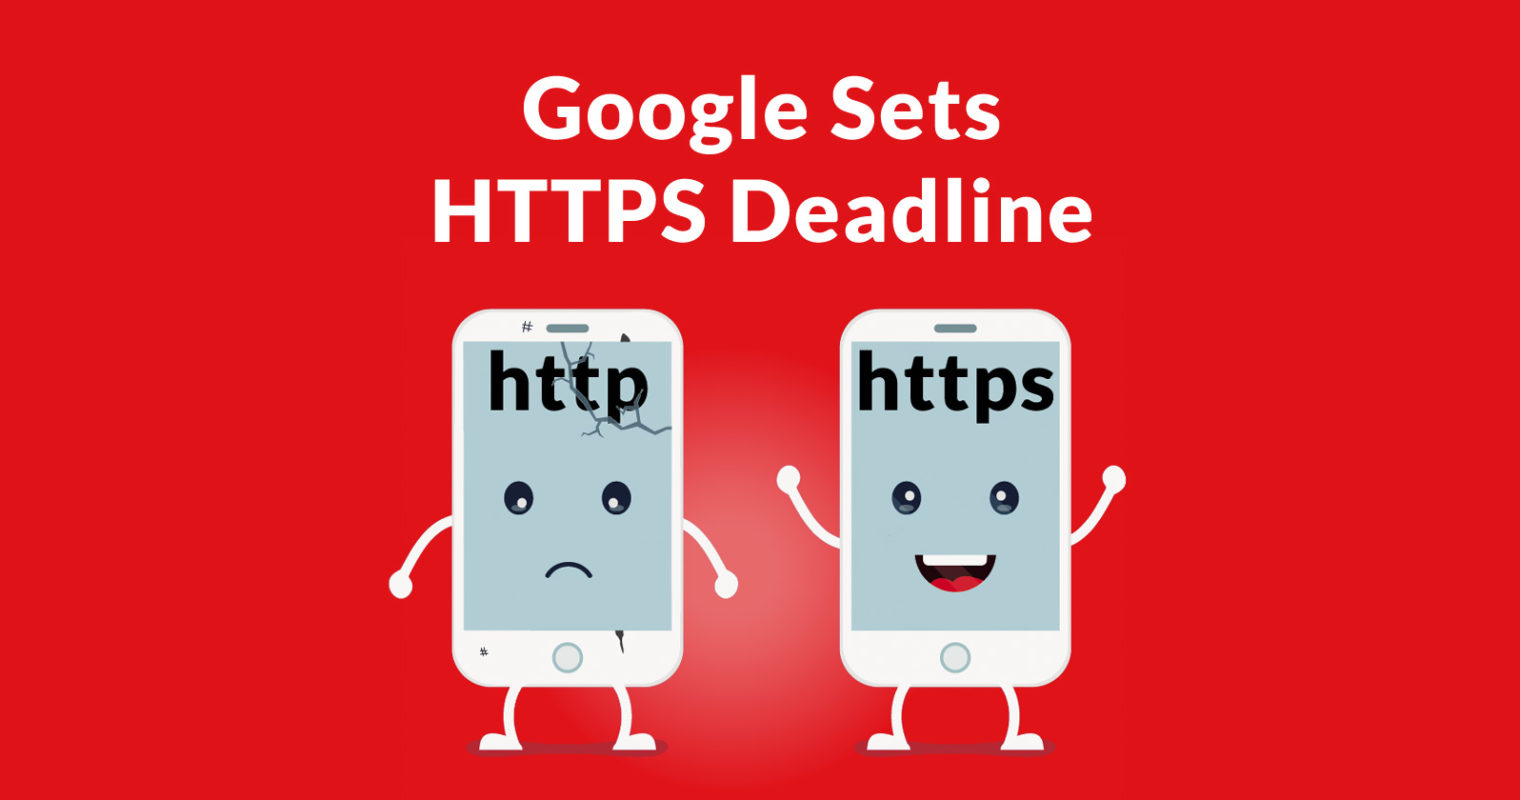 Google Sets Deadline for HTTPS and Warns Publishers to Upgrade Soon